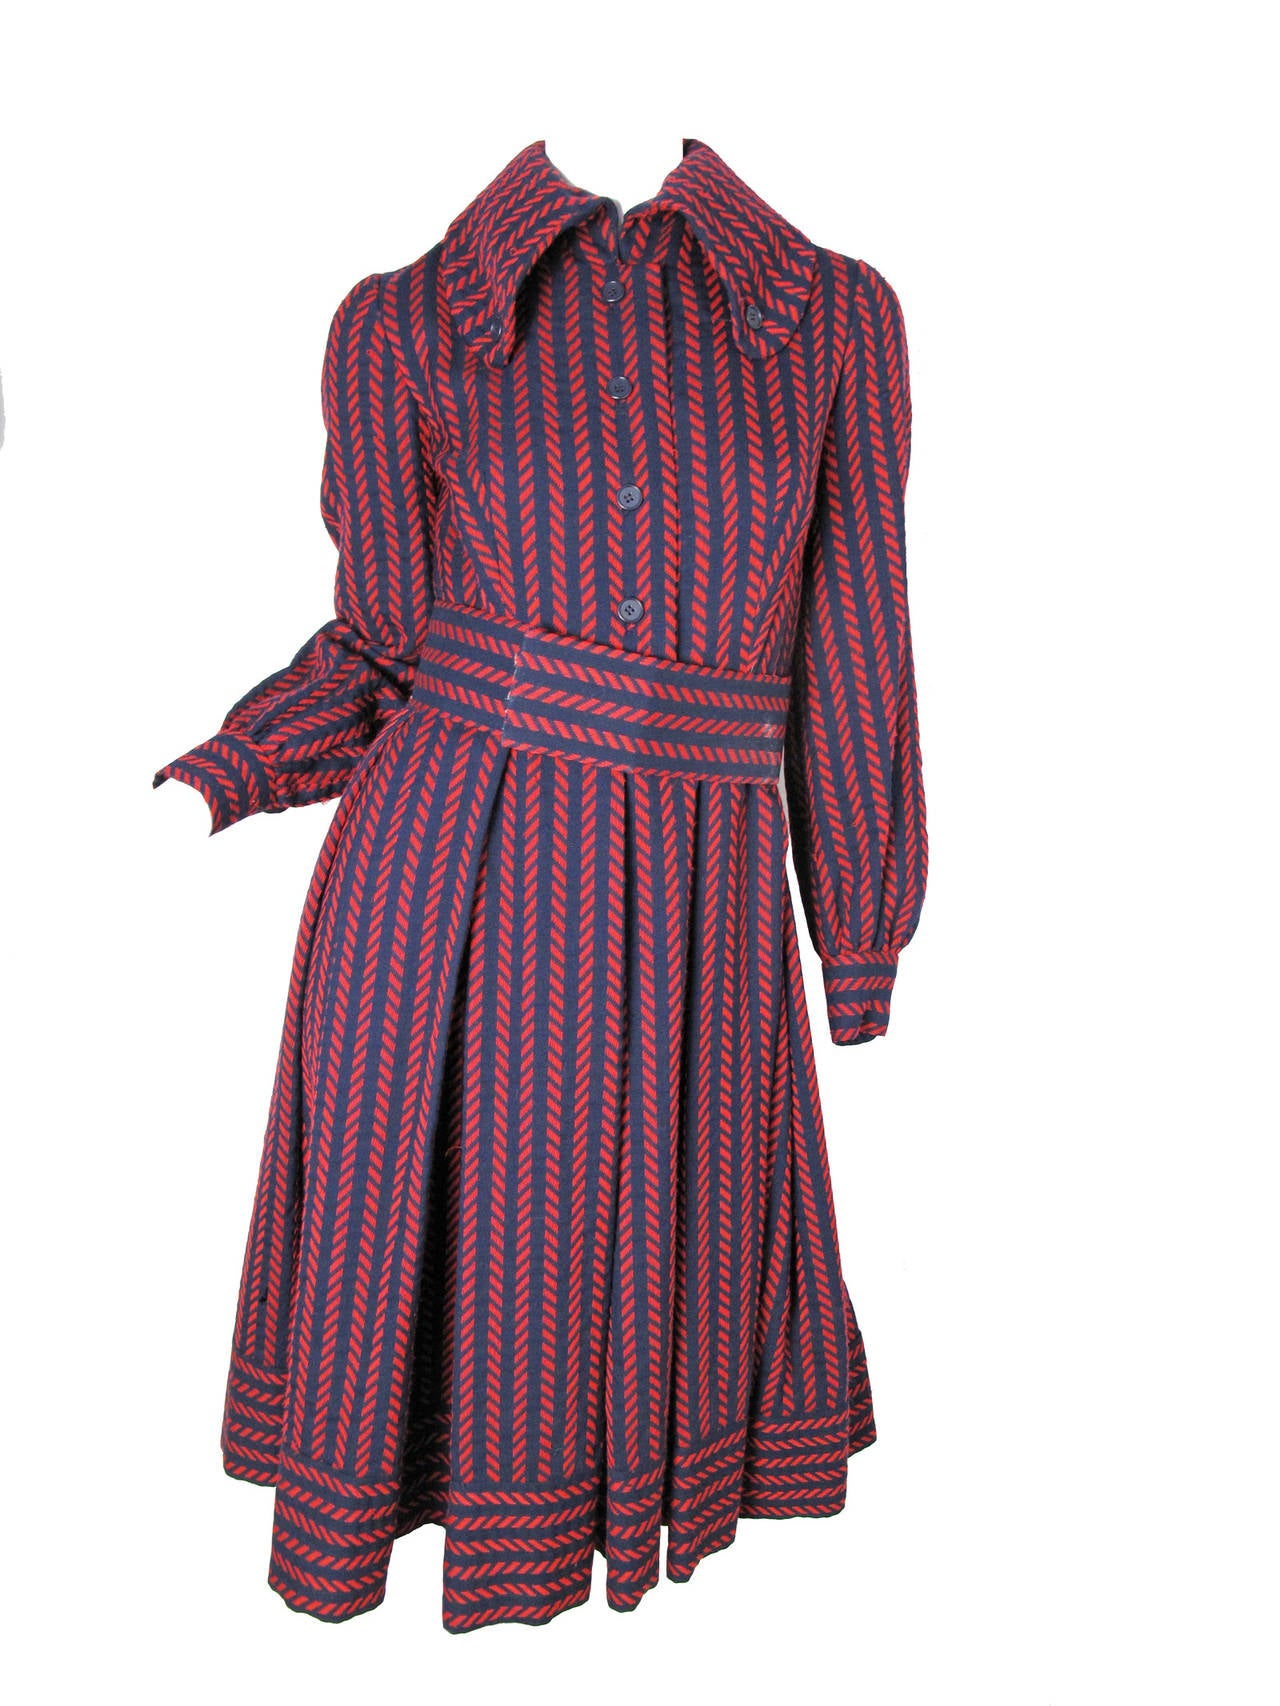 1970s Geoffrey Beene navy and red wool coat dress with belt and removable tie at neck.  Lined. Condition: As is, a few holes, see photos. They do not go through to lining.  